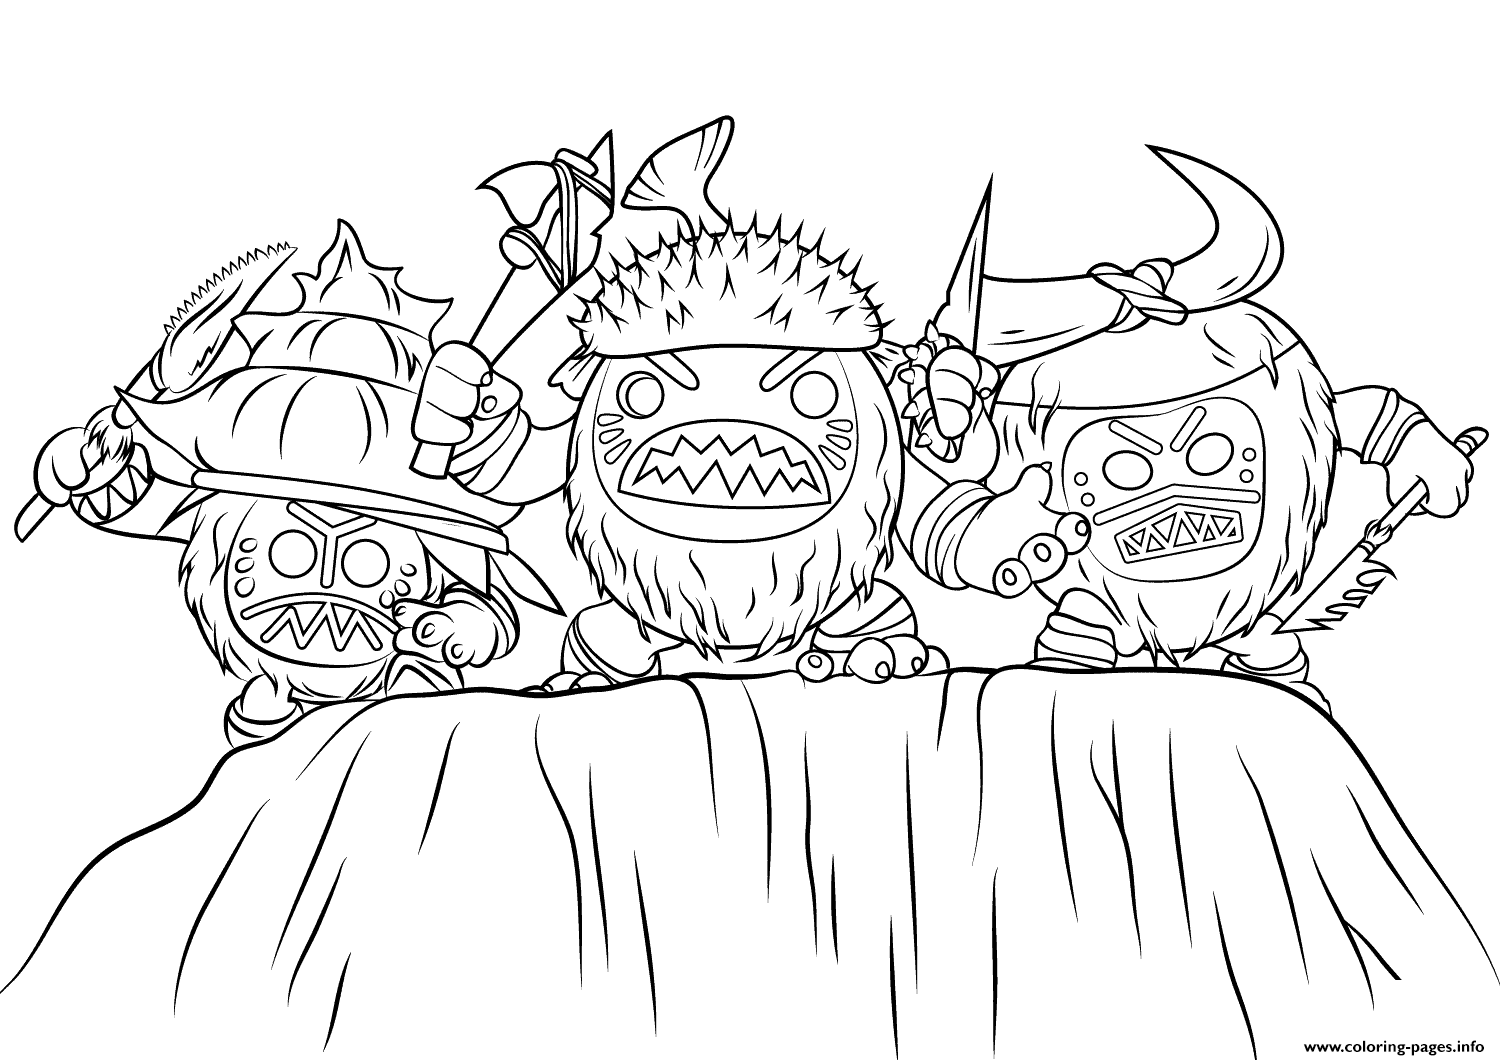 Print kakamora from moana disney coloring pages oceania